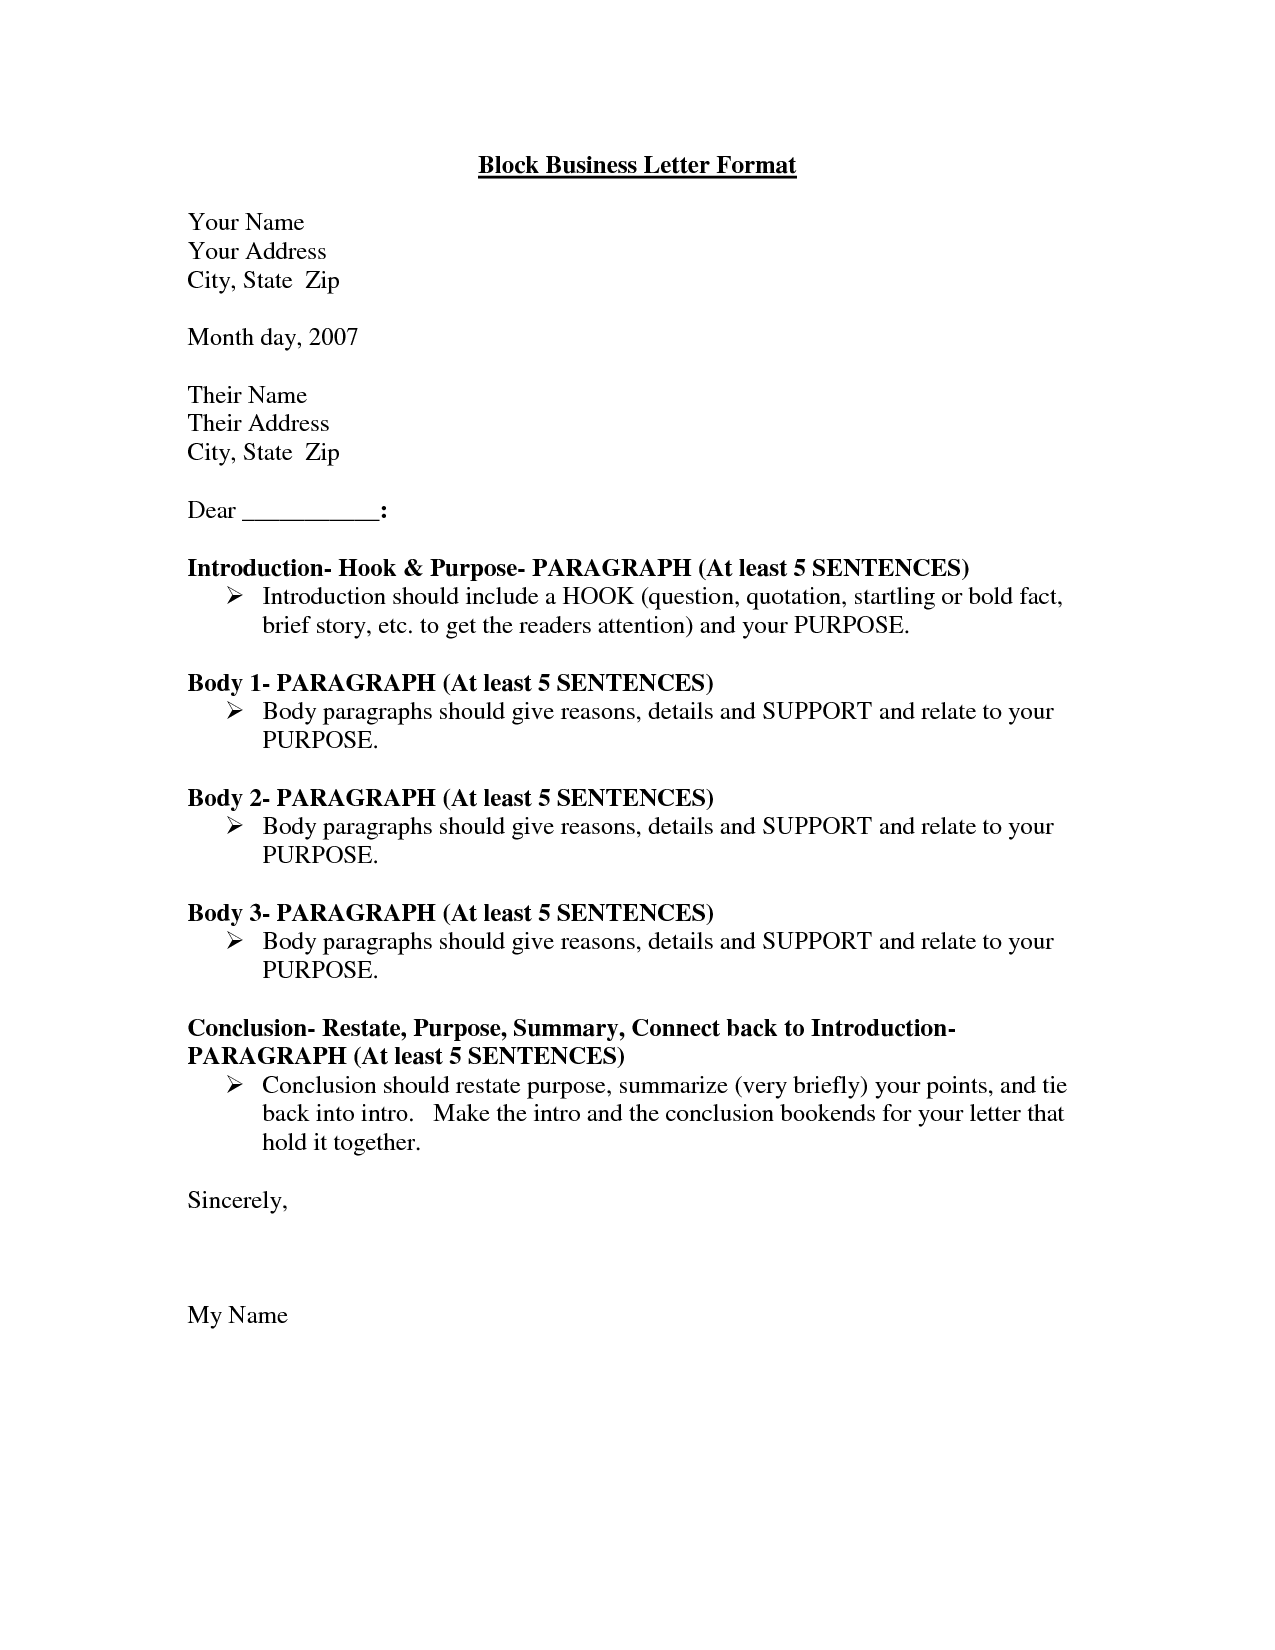 cover letter proper formats personal format with and enclosures sample business formal best free home design